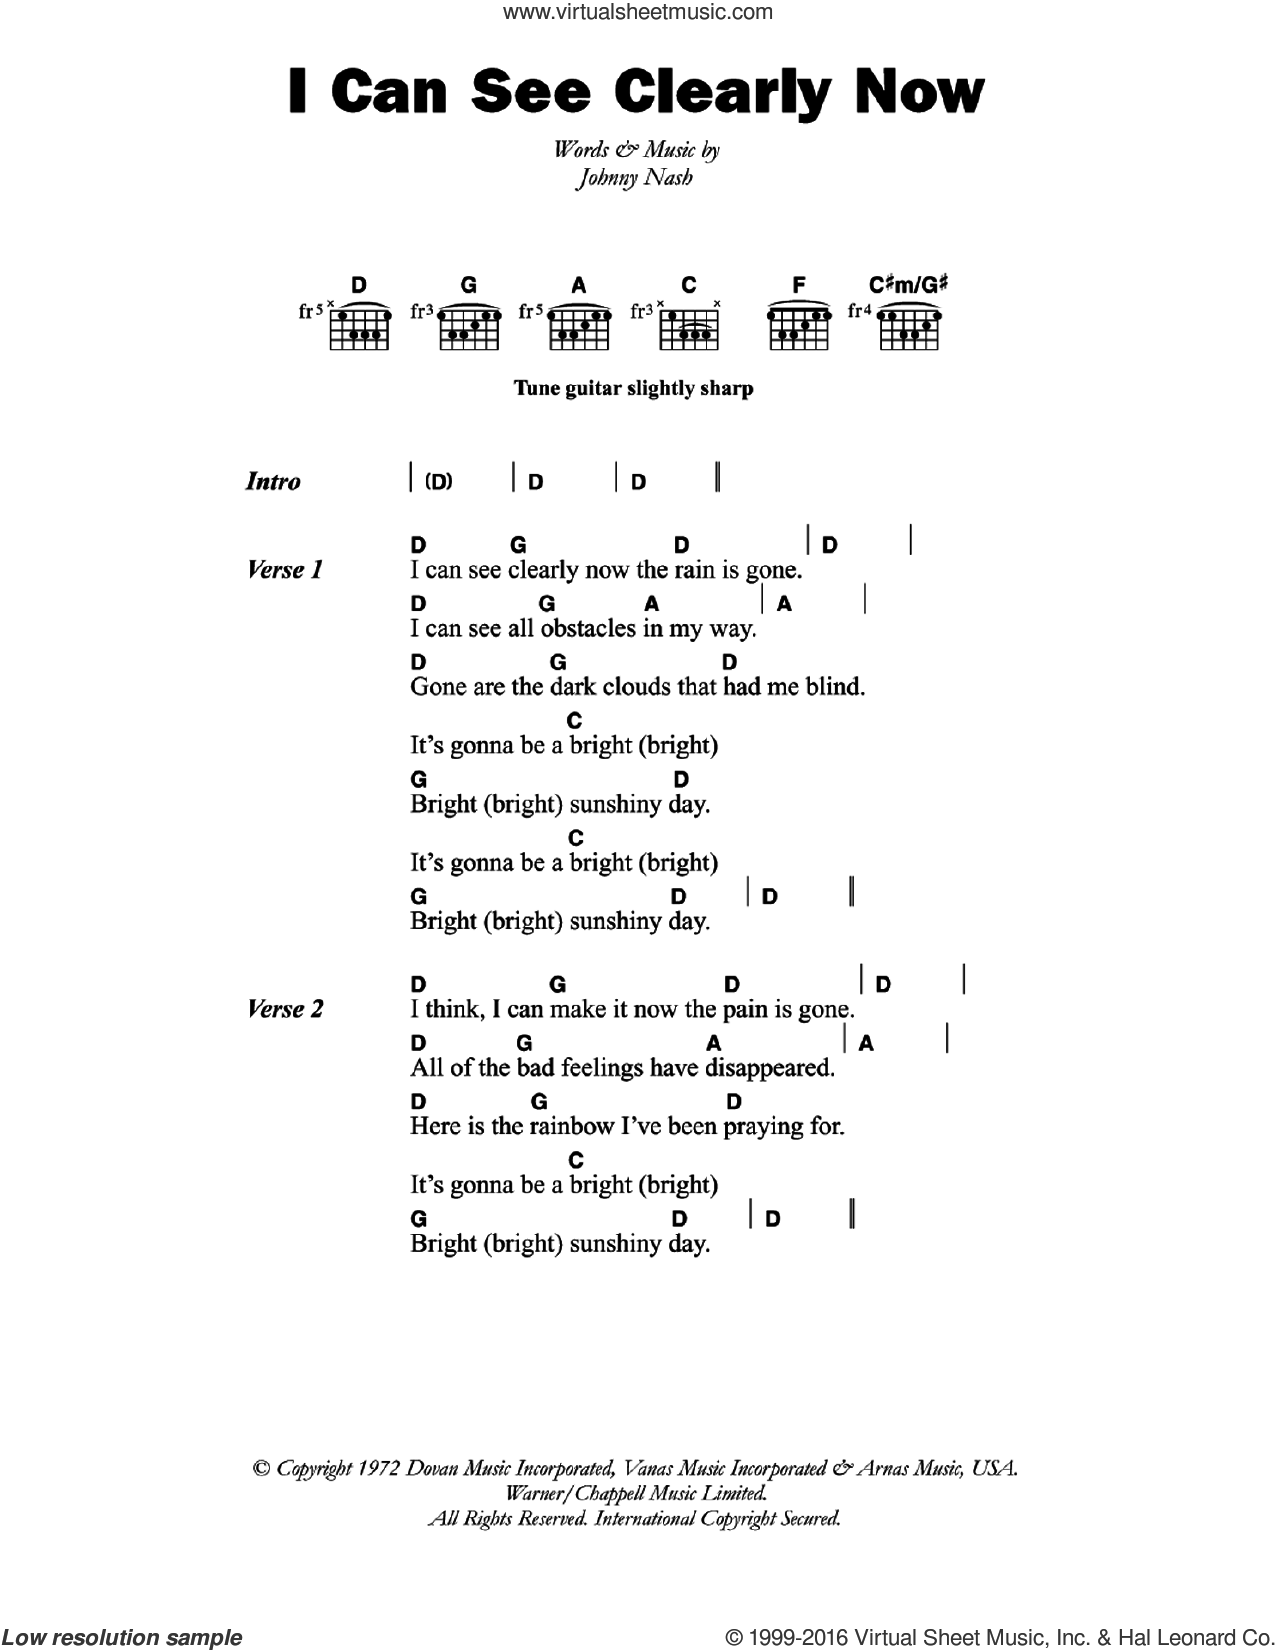 I Can See Clearly Now sheet music for guitar (chords) by Johnny Nash, intermediate skill level